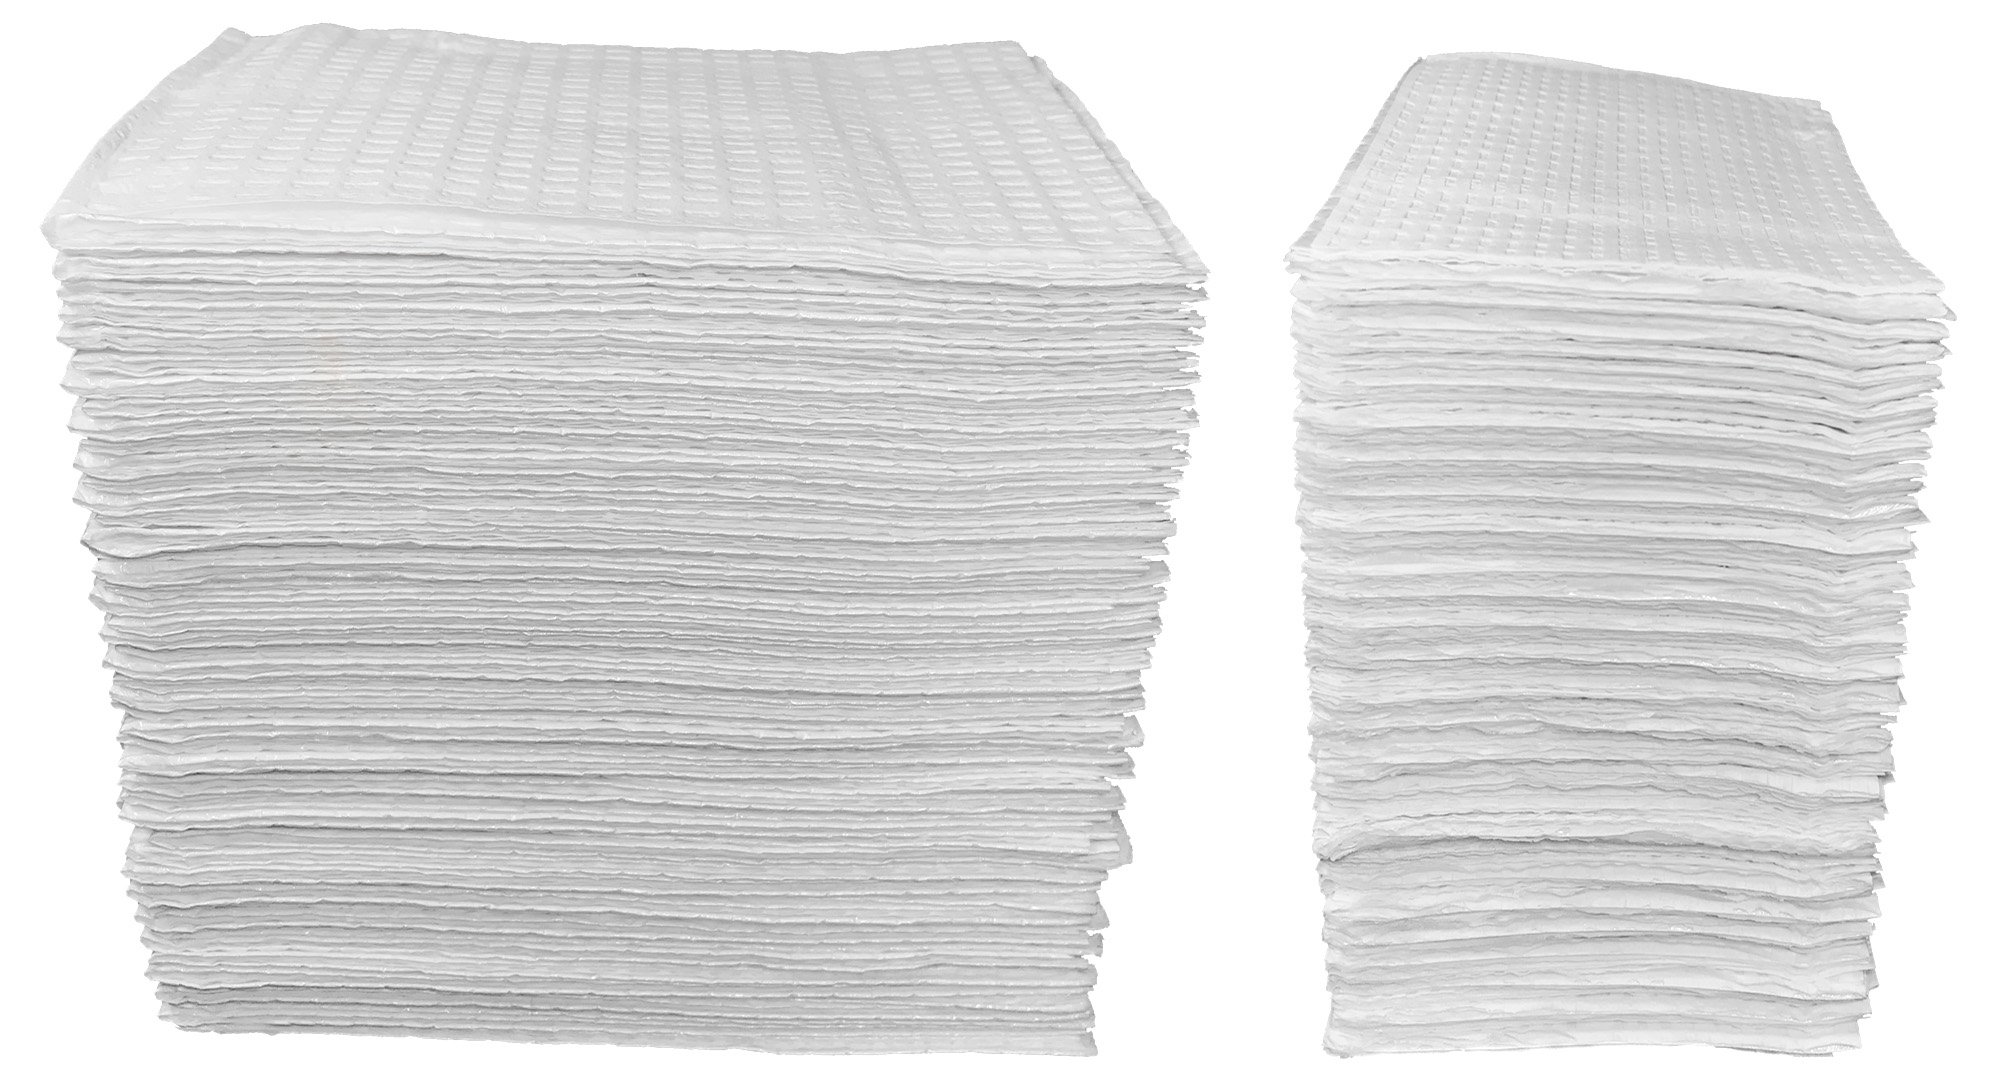 50 Count - White 3-Ply Baby Public Changing Table Liners - 13 in. X 19 in. by Sunshine Gift Baskets